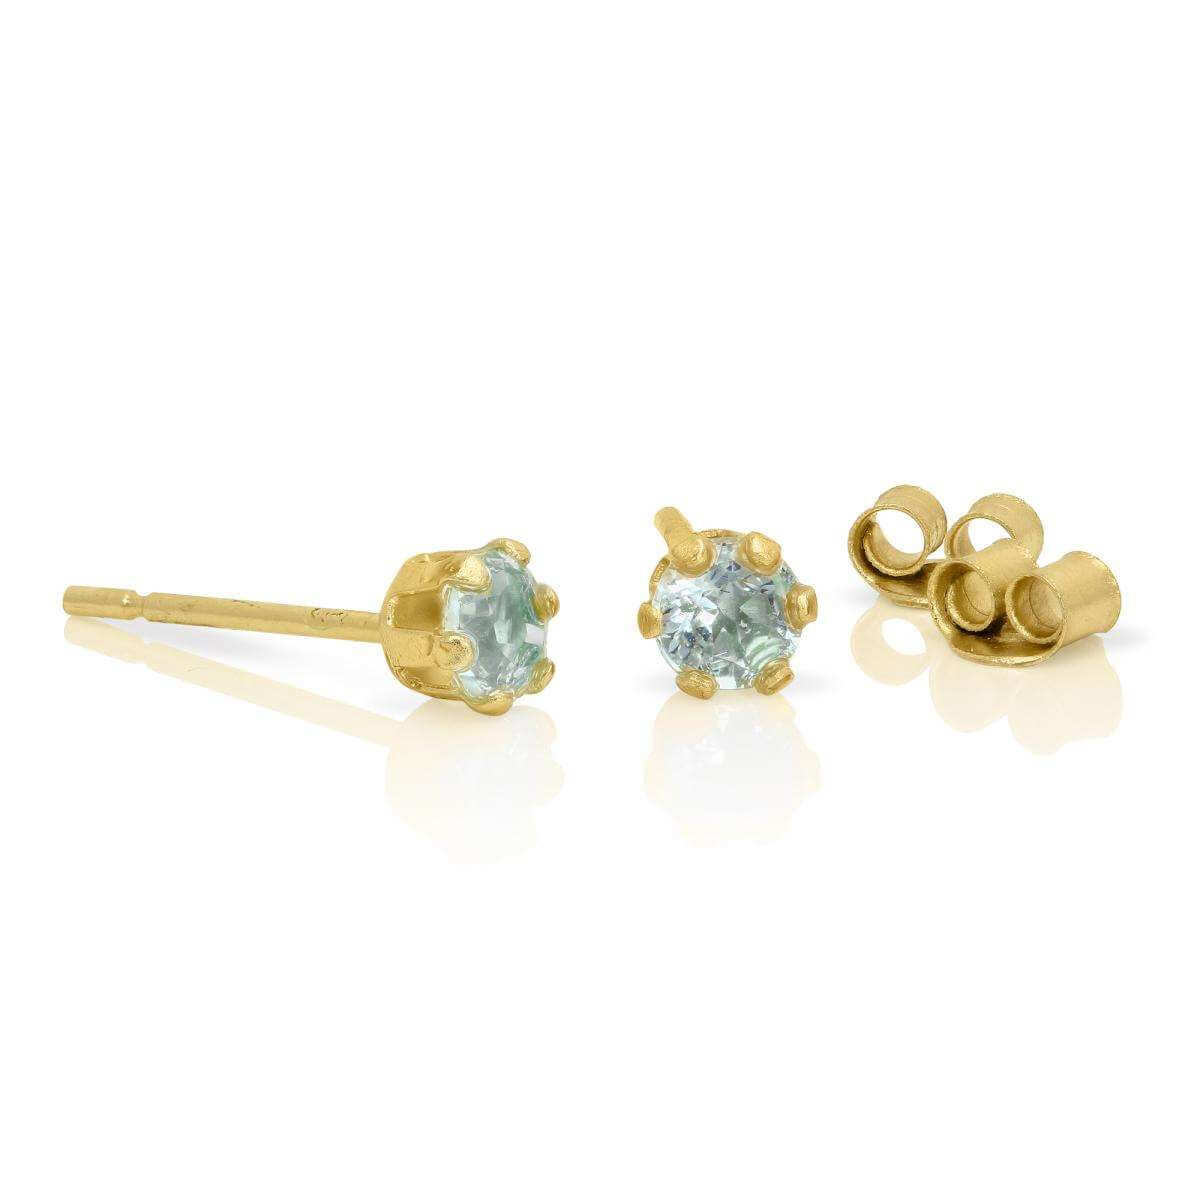 9ct Gold & 3mm Round Sky Blue Topaz Gemstone Stud Earrings